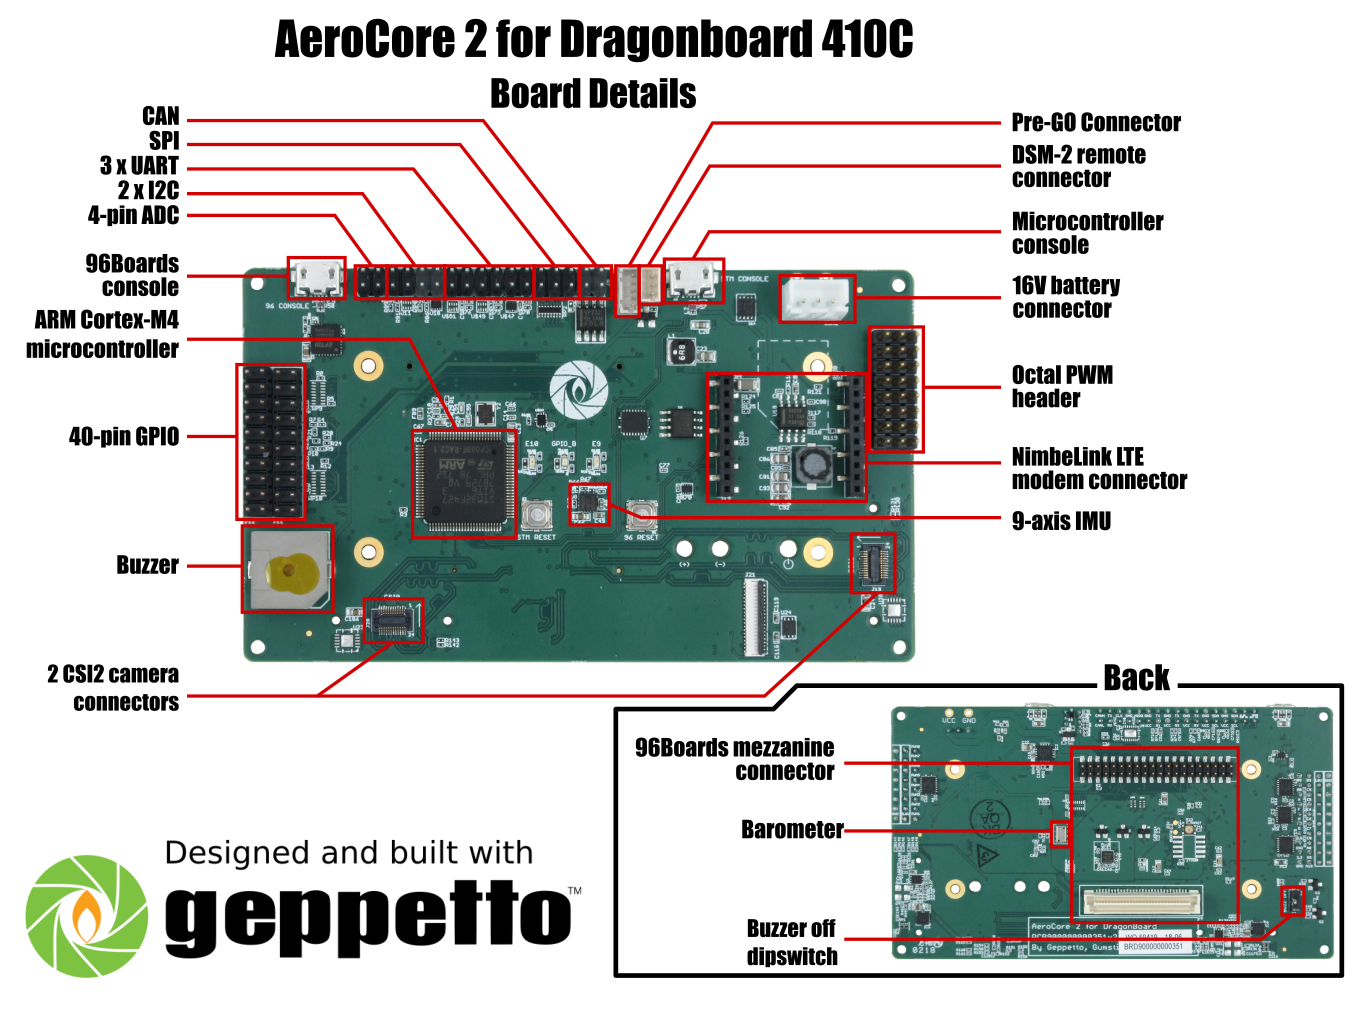 New callout image for the Dragonboard 410C